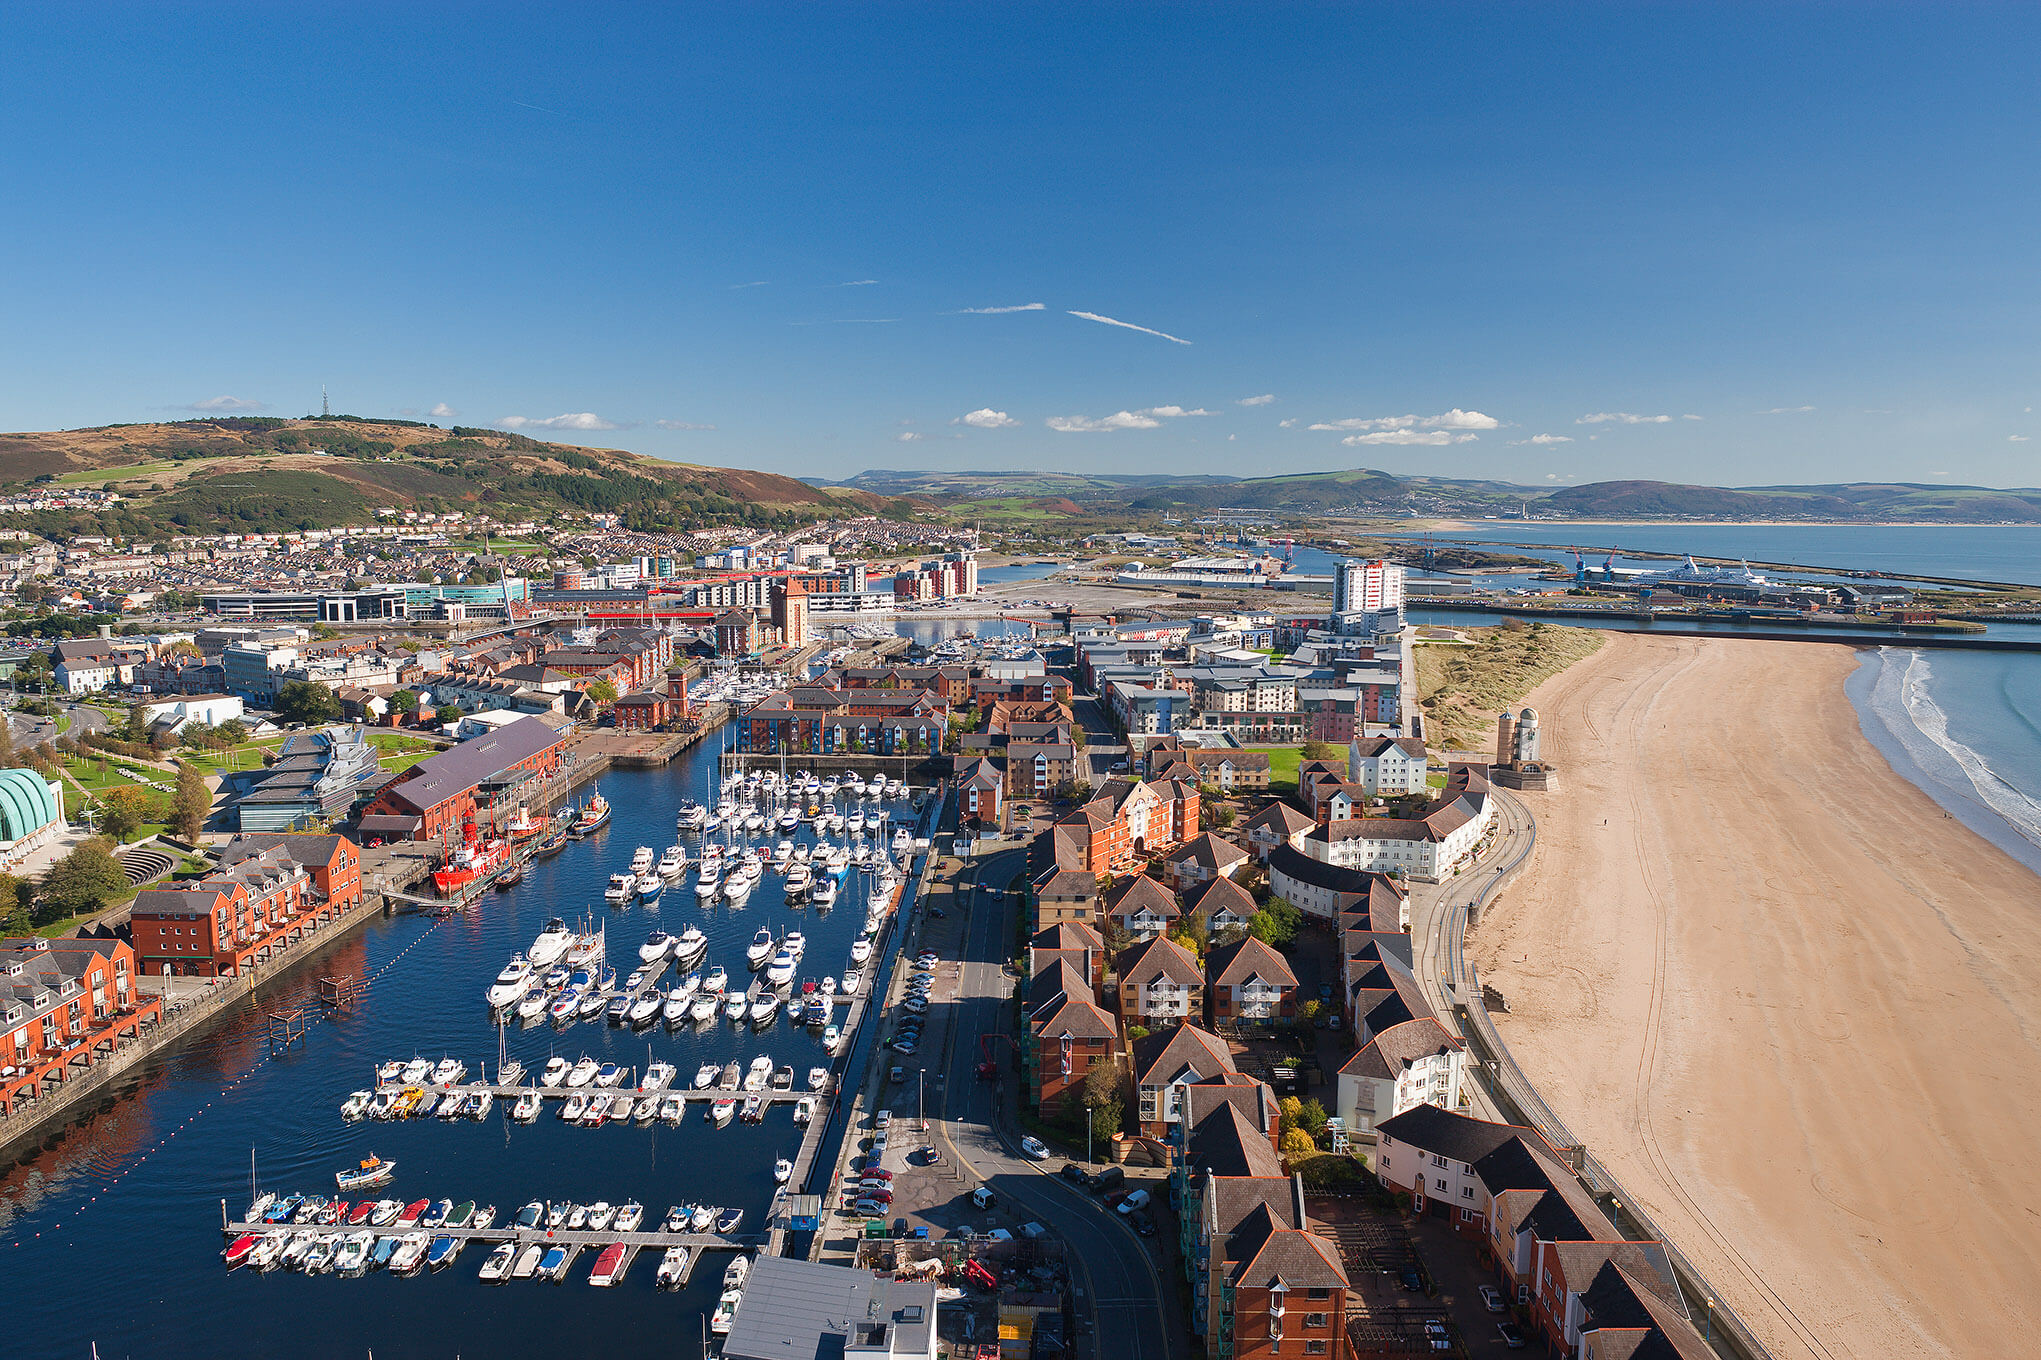 Swansea marina from the air